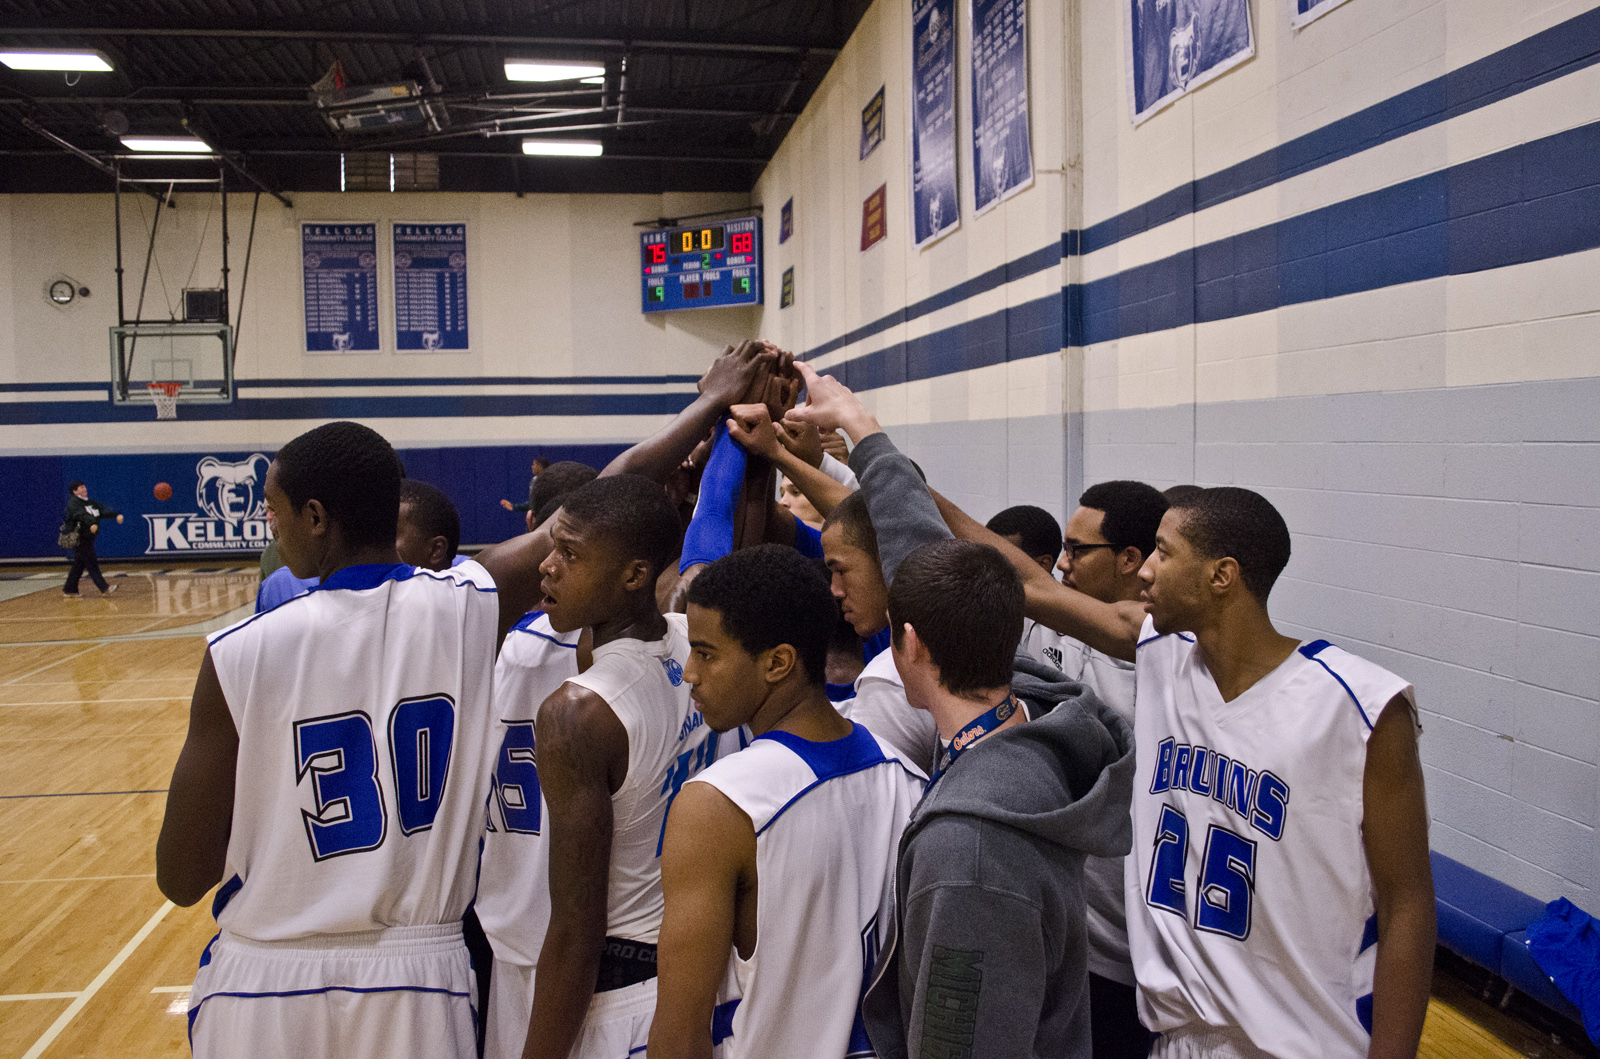 Members of KCC's men's basketball team join hands in a huddle during a game at the Miller Gym